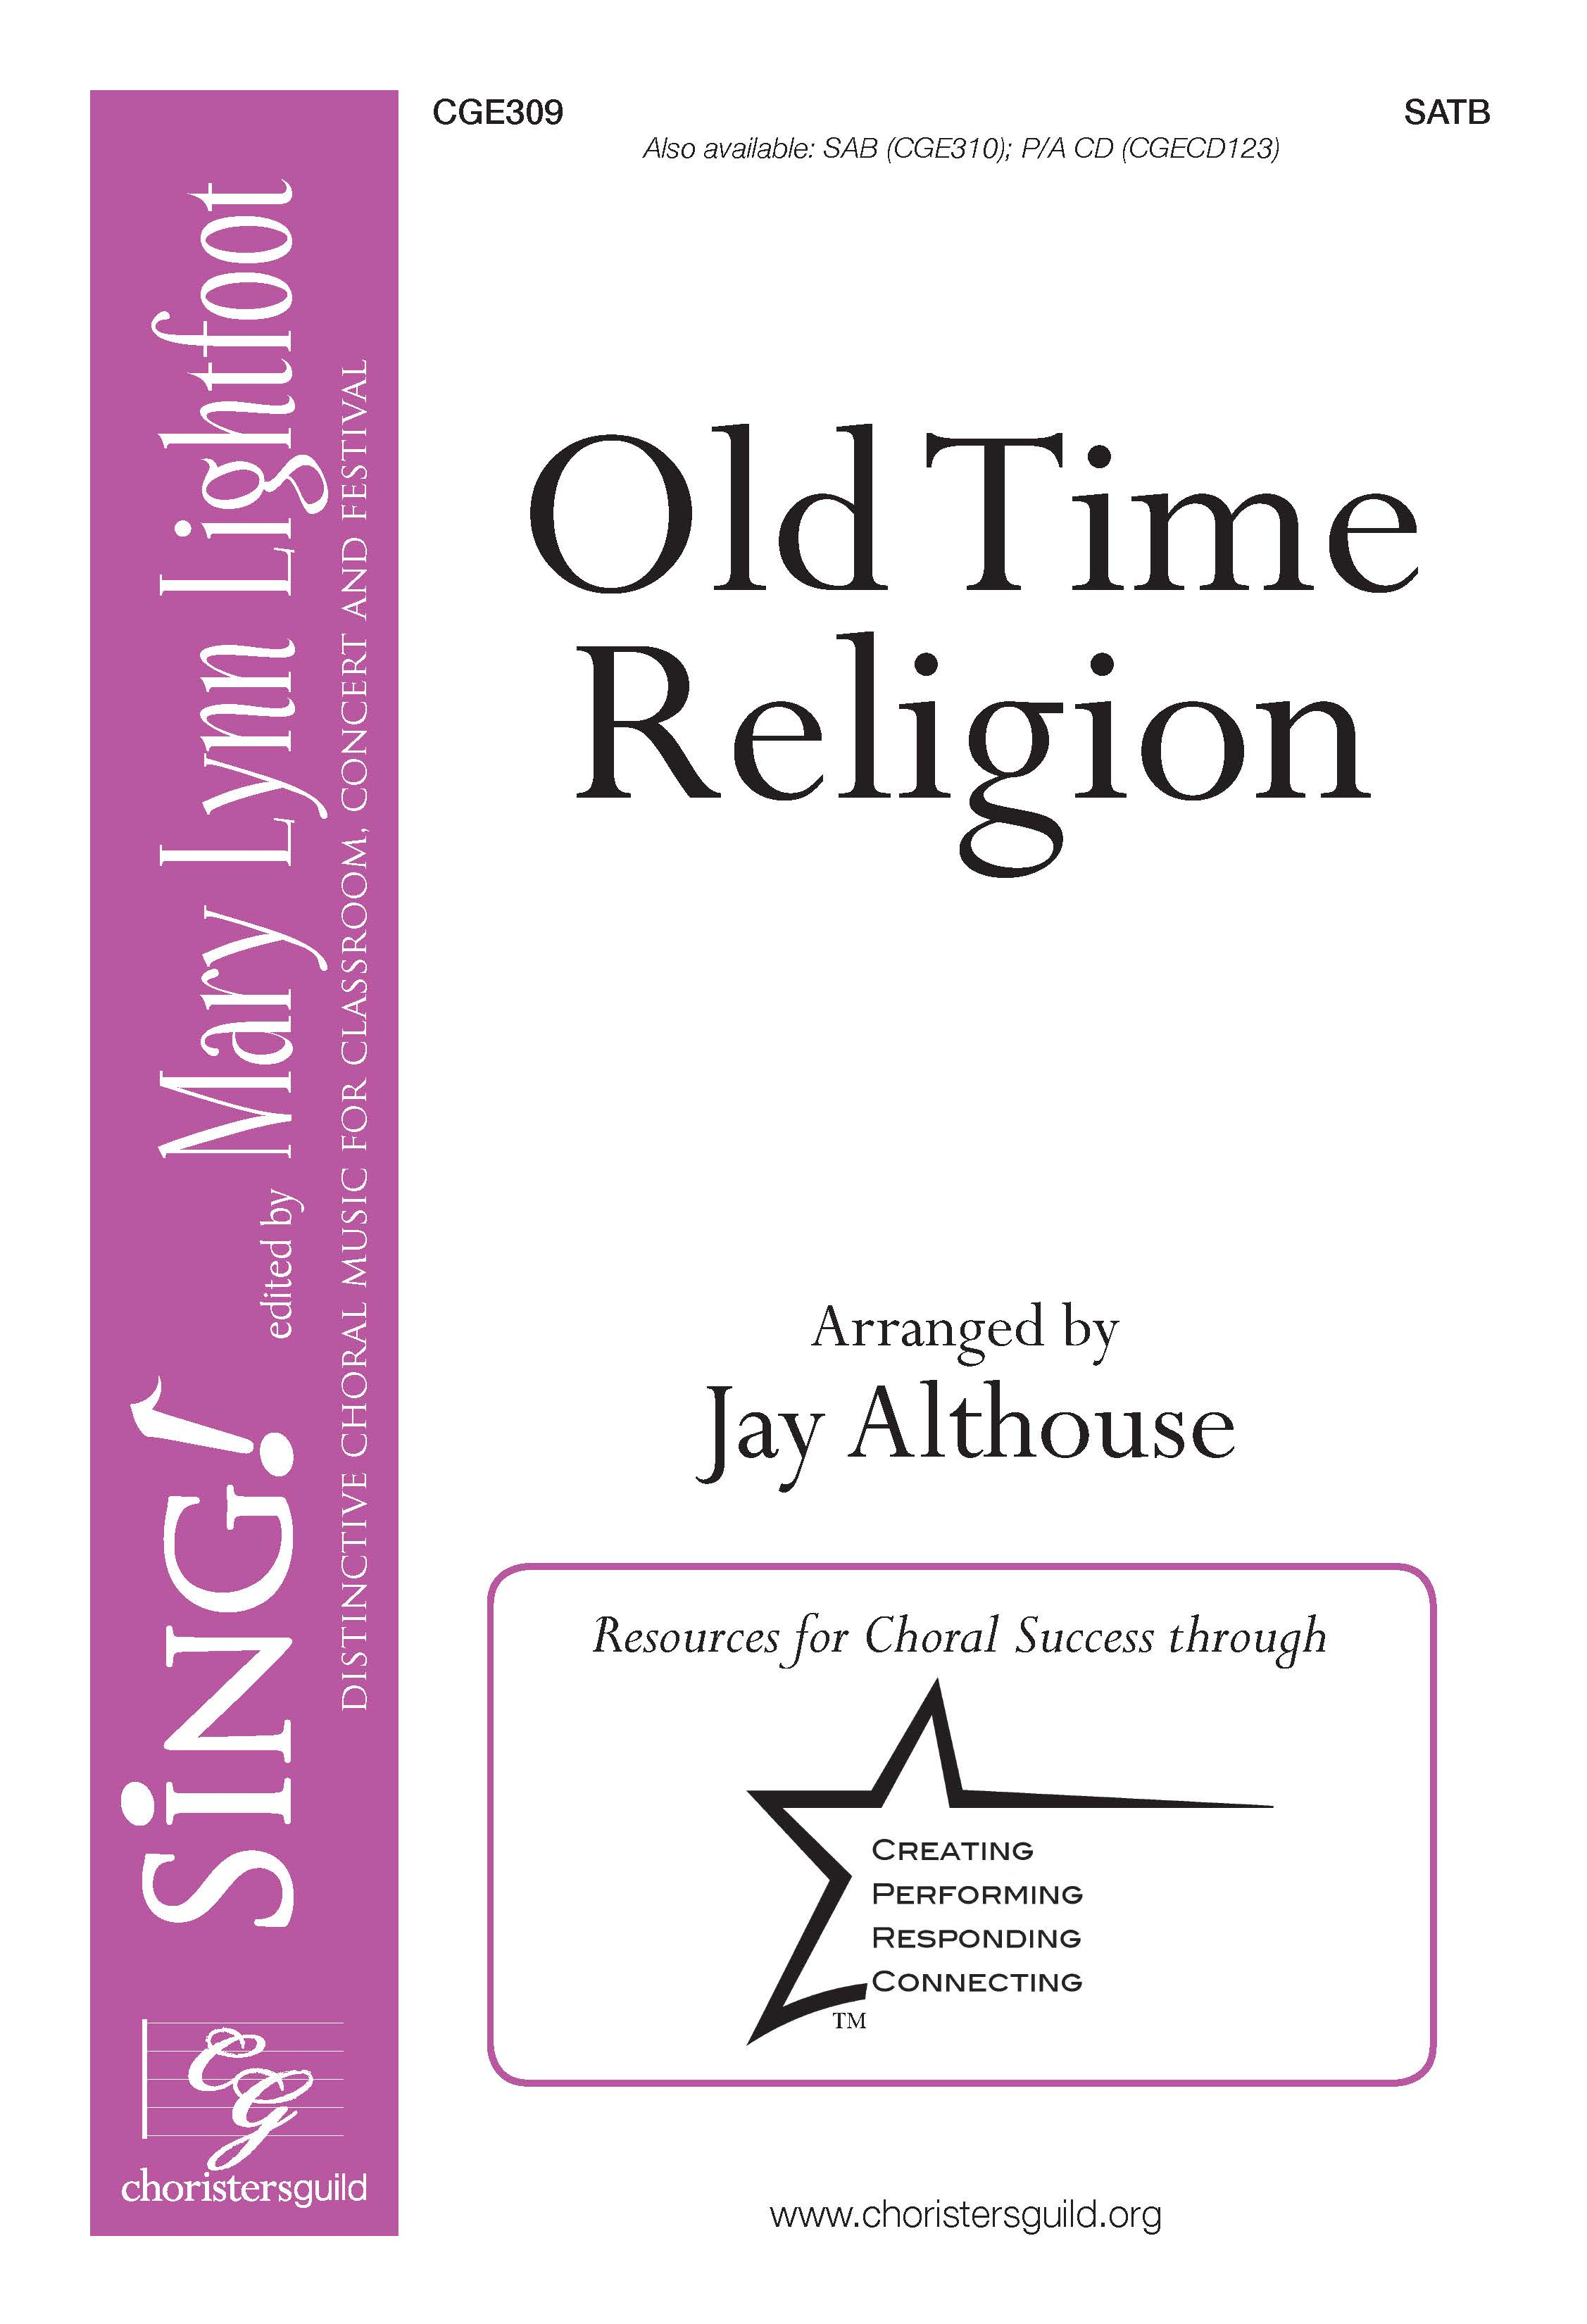 Old Time Religion - SATB